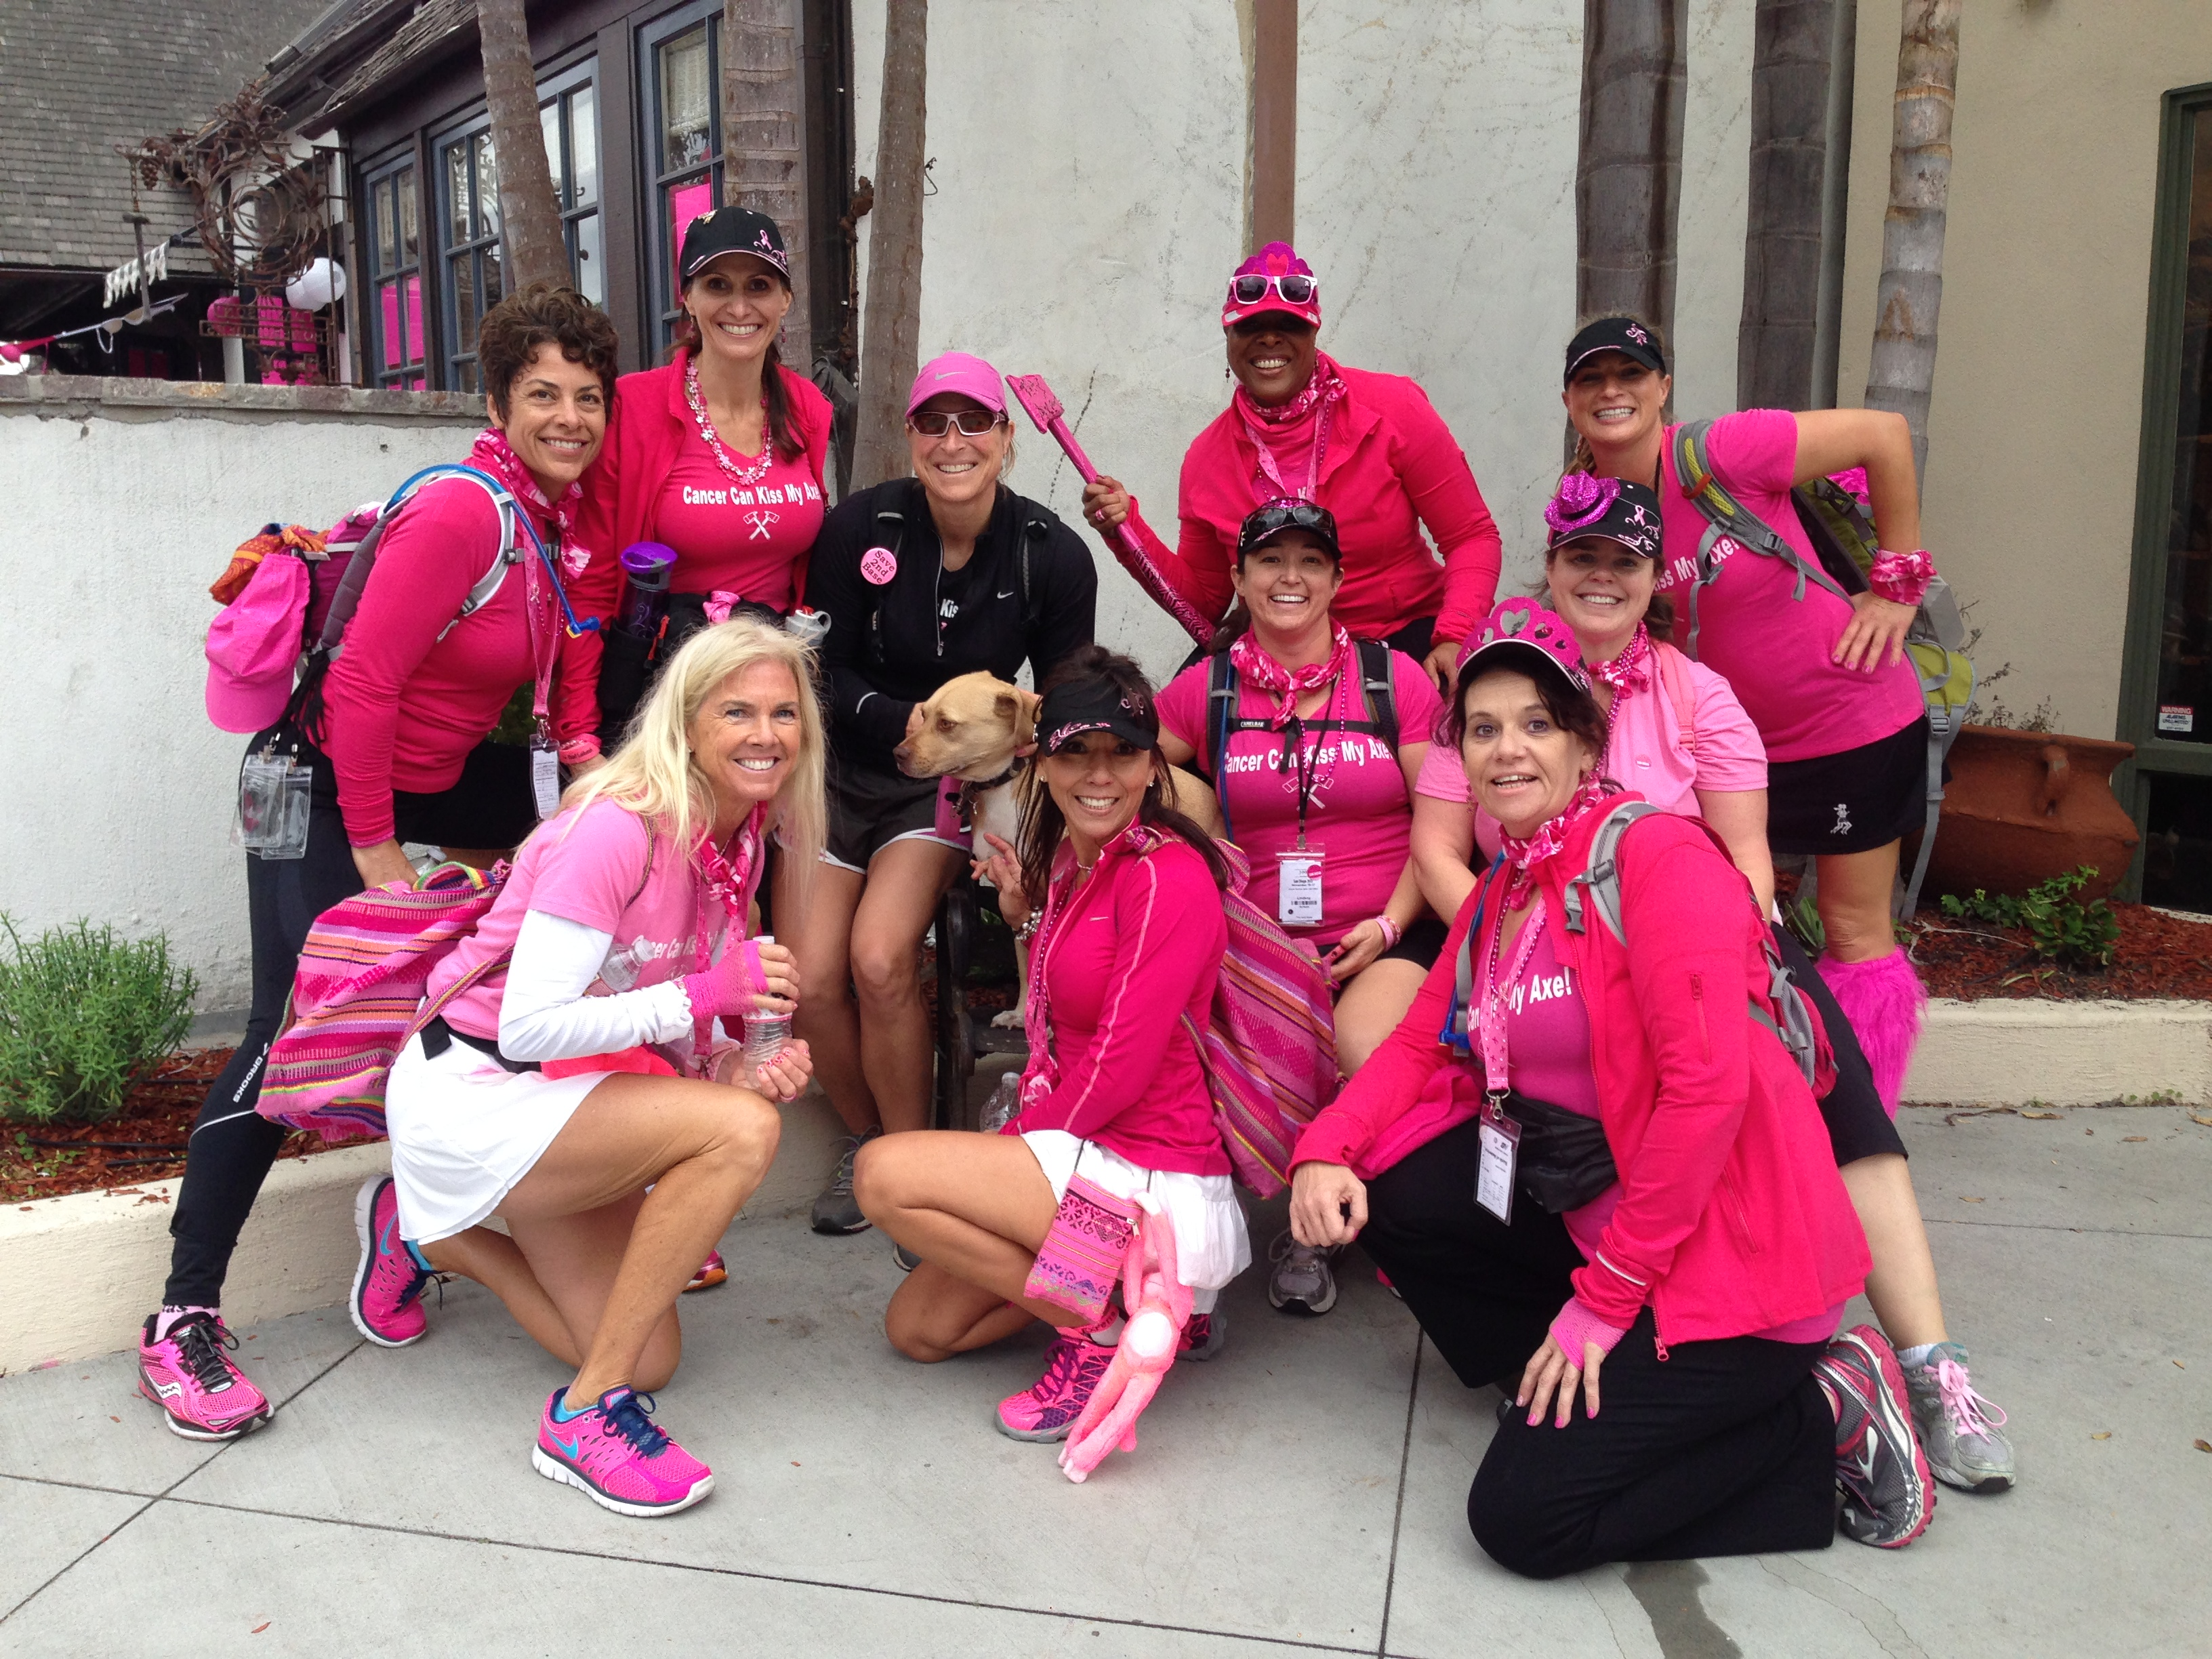 susan g breast cancer walk